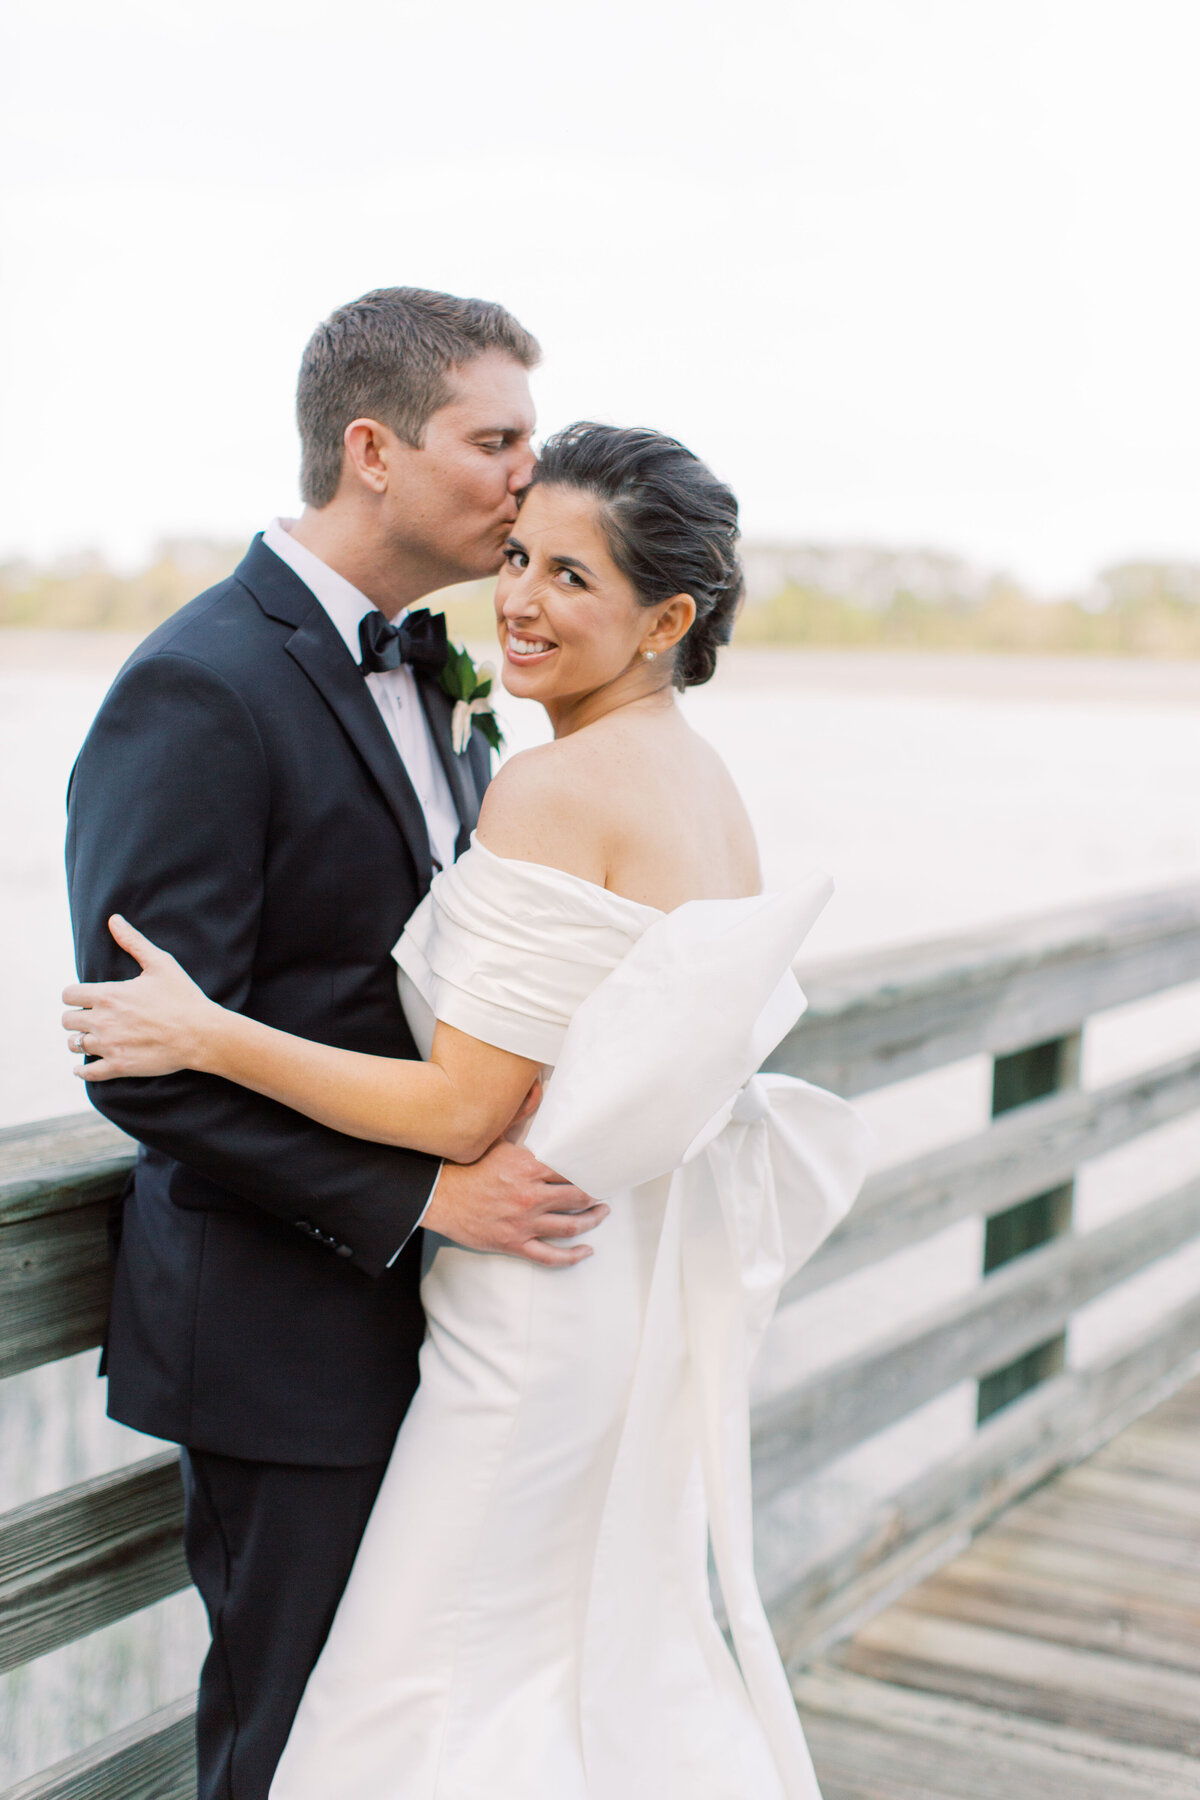 Powell_Oldfield_River_Club_Bluffton_South_Carolina_Beaufort_Savannah_Wedding_Jacksonville_Florida_Devon_Donnahoo_Photography_0750